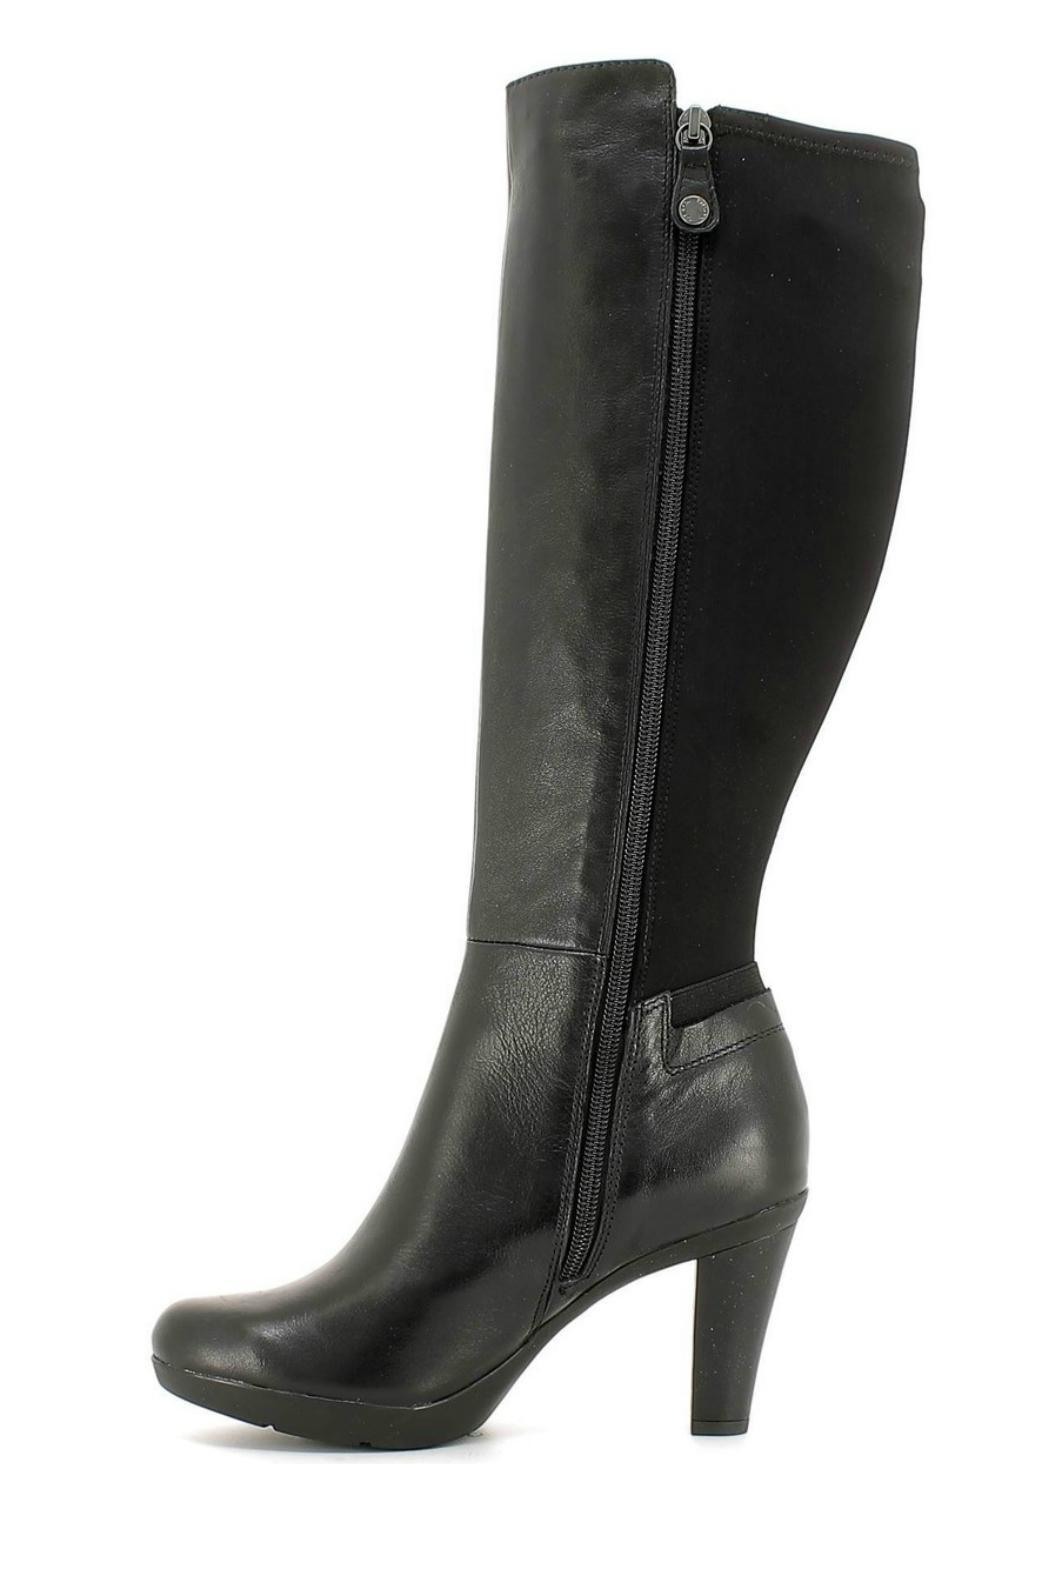 45cdc9a636c Geox Inspiration Tall Boot from Canada by Blue Sky Fashions ...